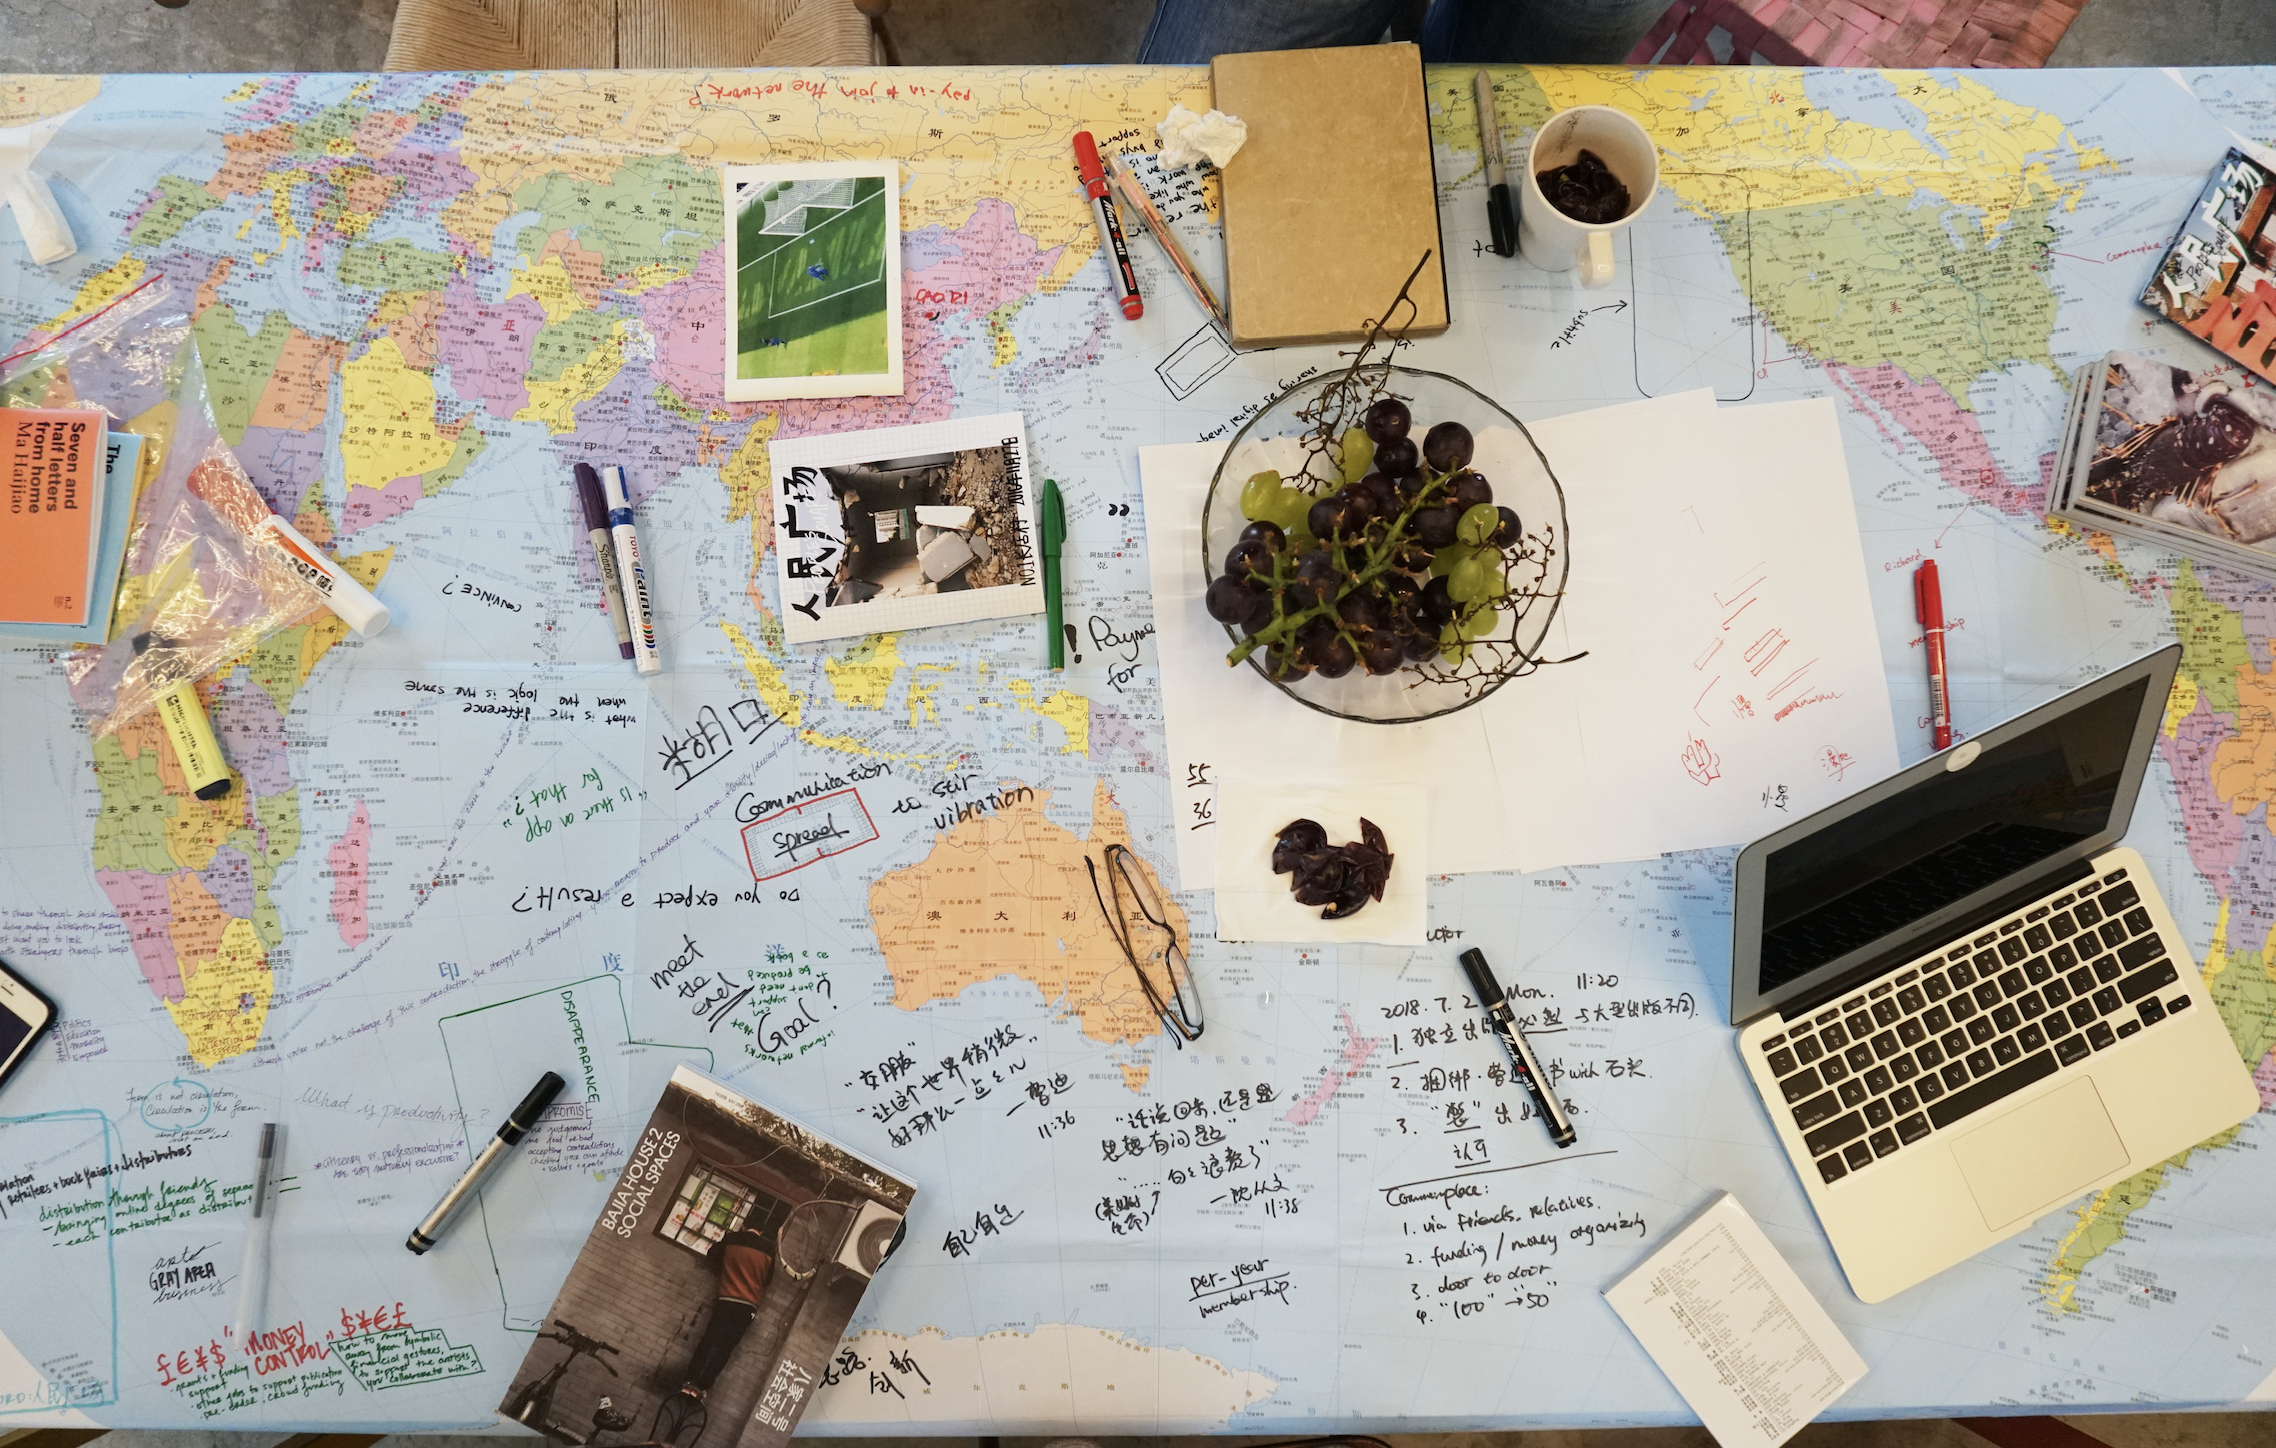 Workshopping transnational distribution routes and strategies.